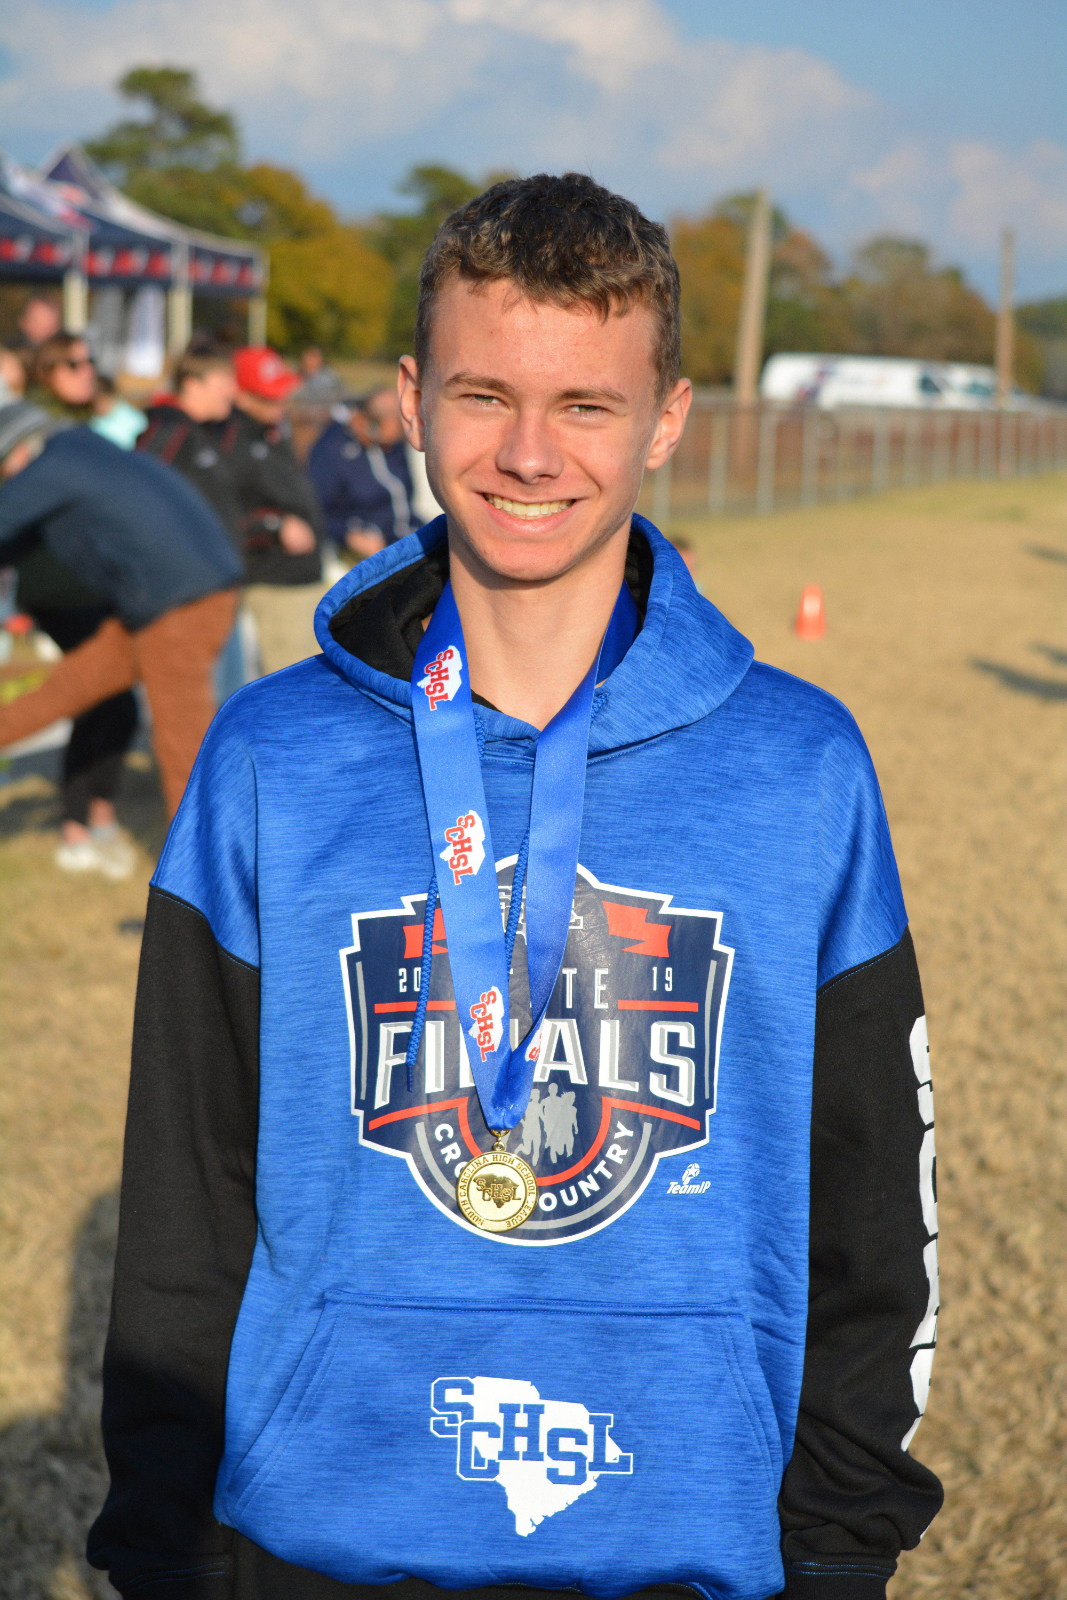 O'NEILL & FROCK LEAD BULLDOGS TO STRONG FINISH AT STATE MEET